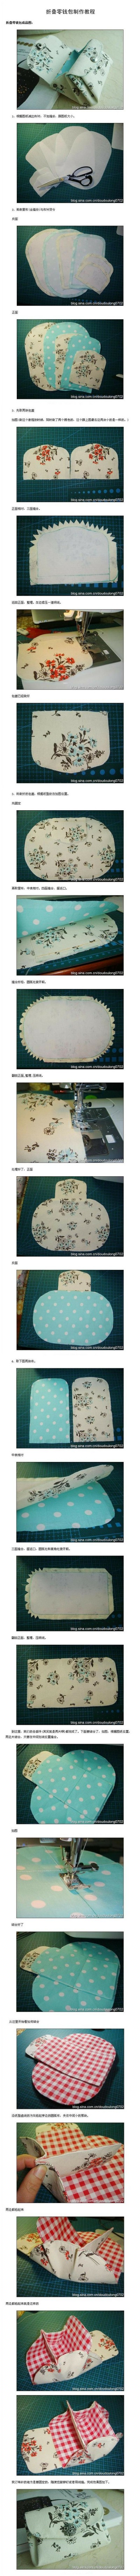 How to make your own beautiful coin bag step by step DIY tutorial picture instructions